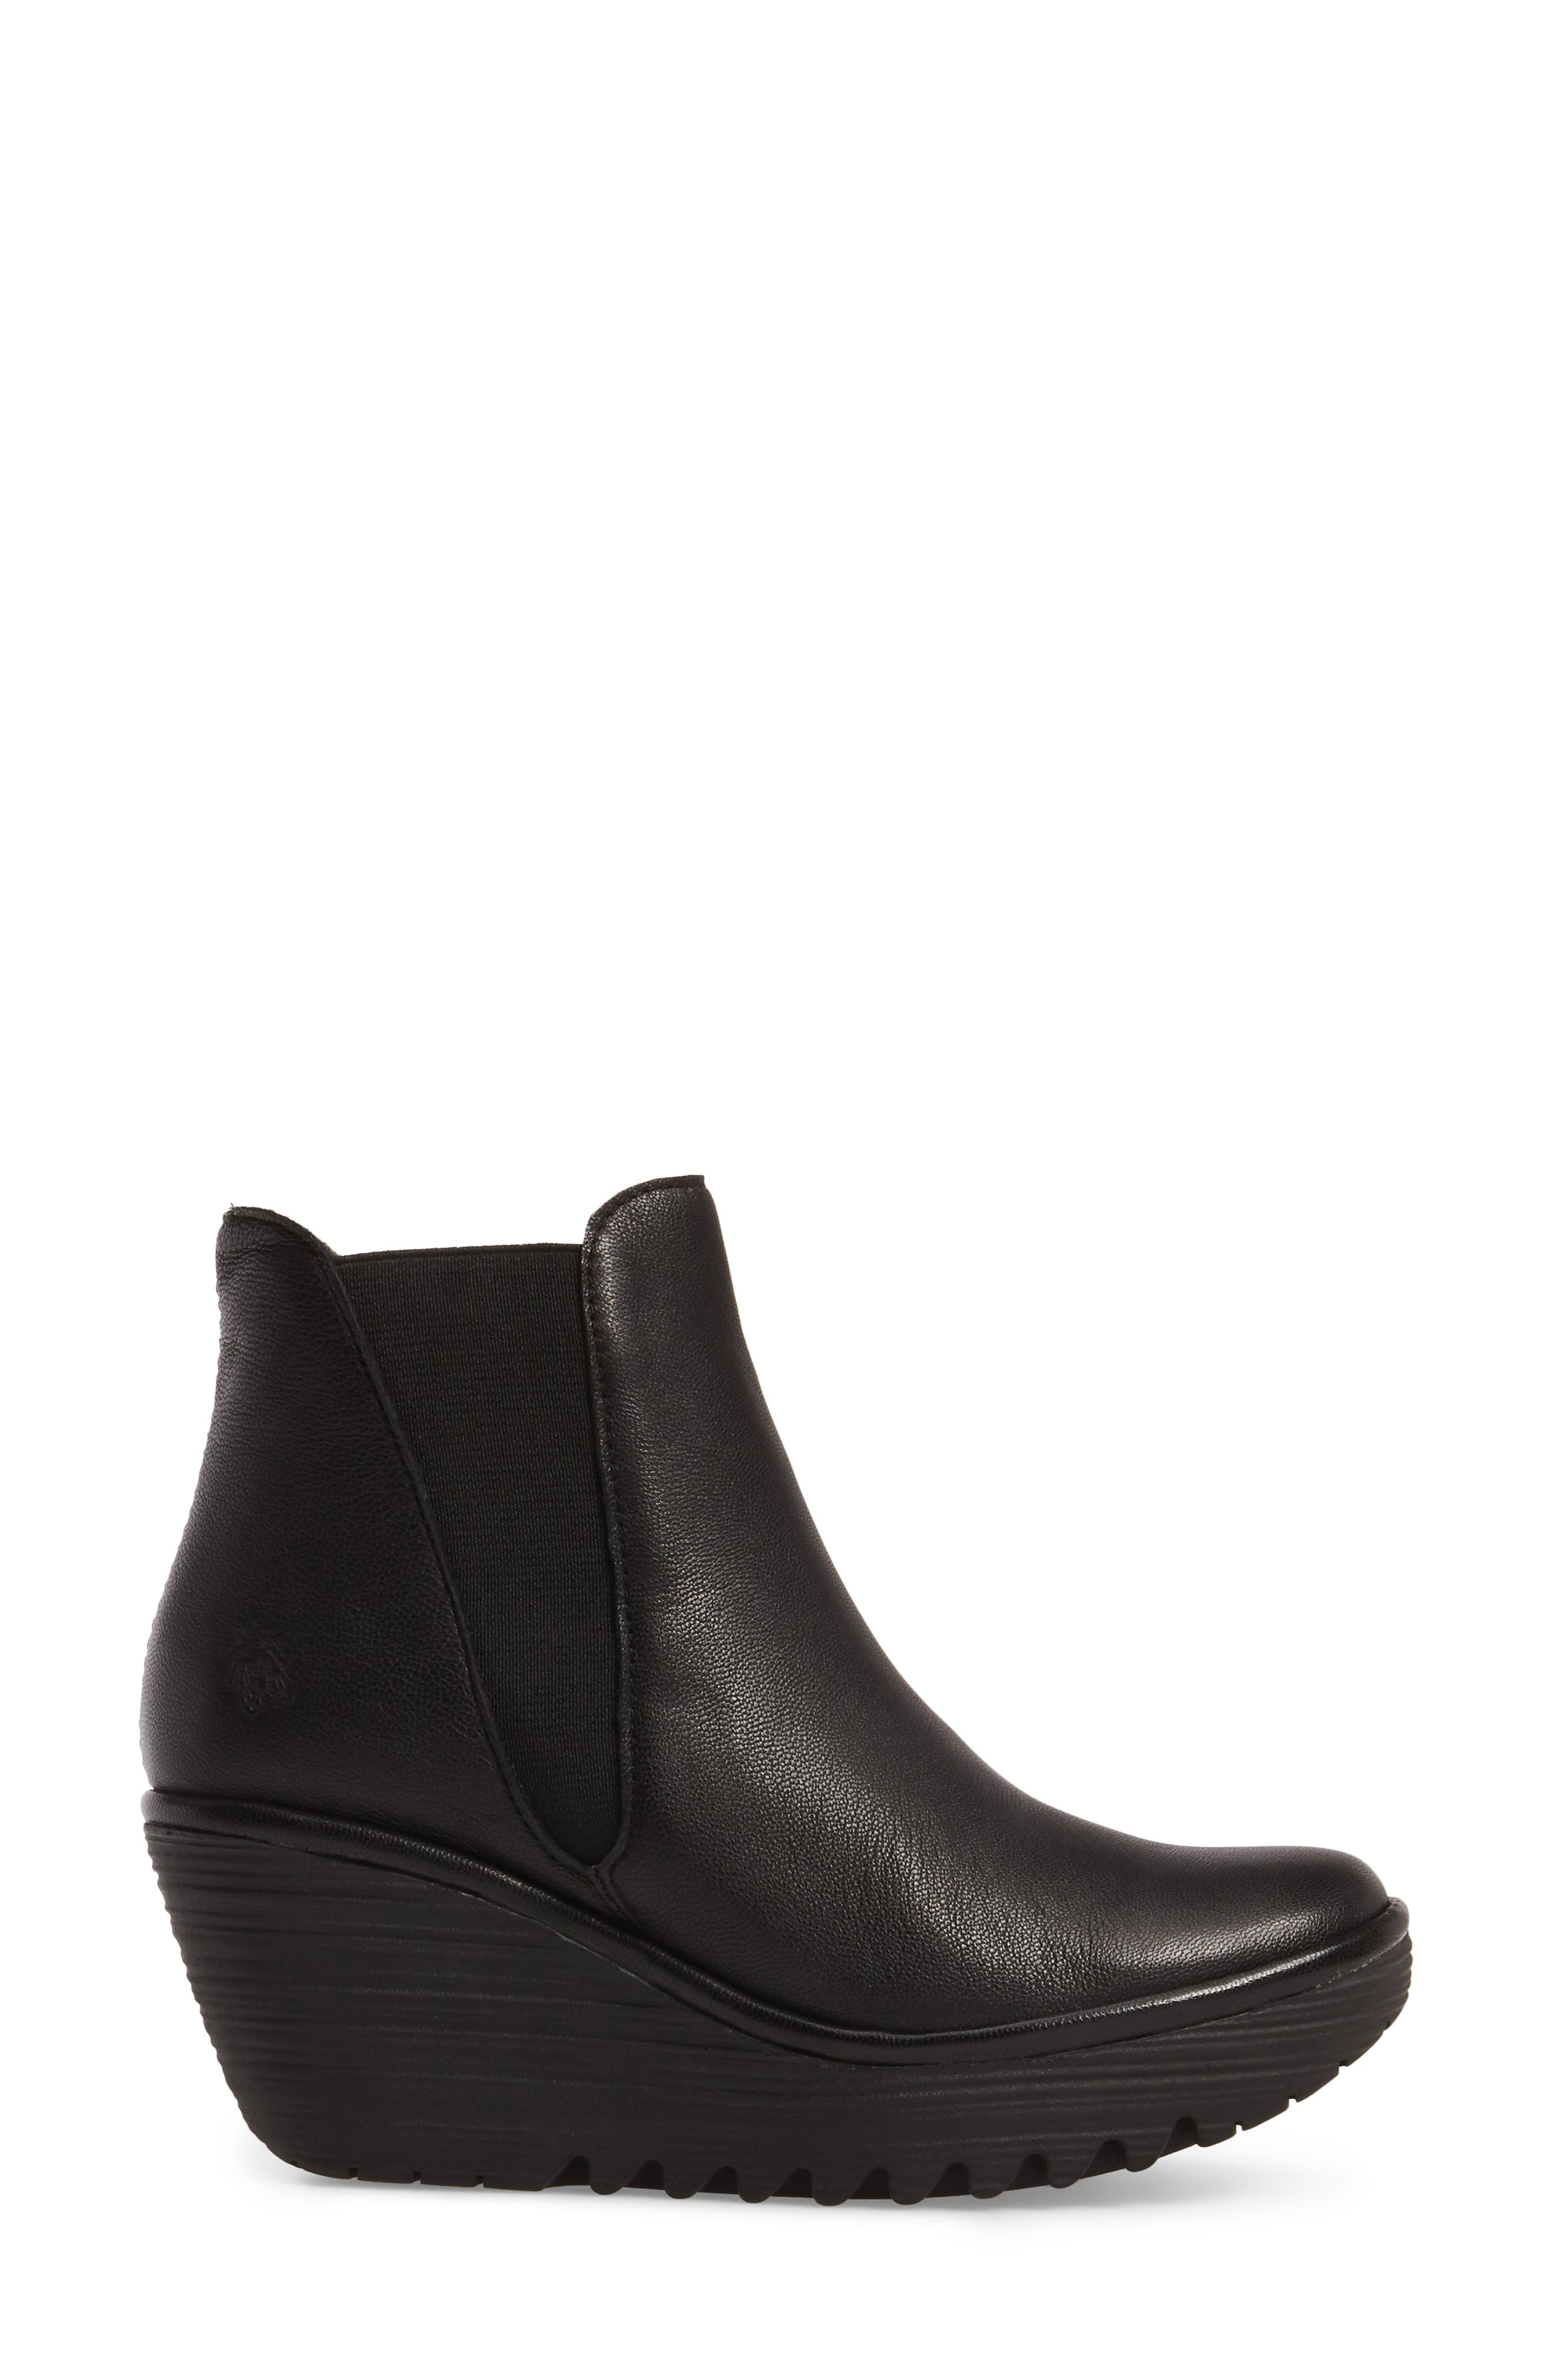 Yoss Wedge Bootie,                             Alternate thumbnail 3, color,                             001